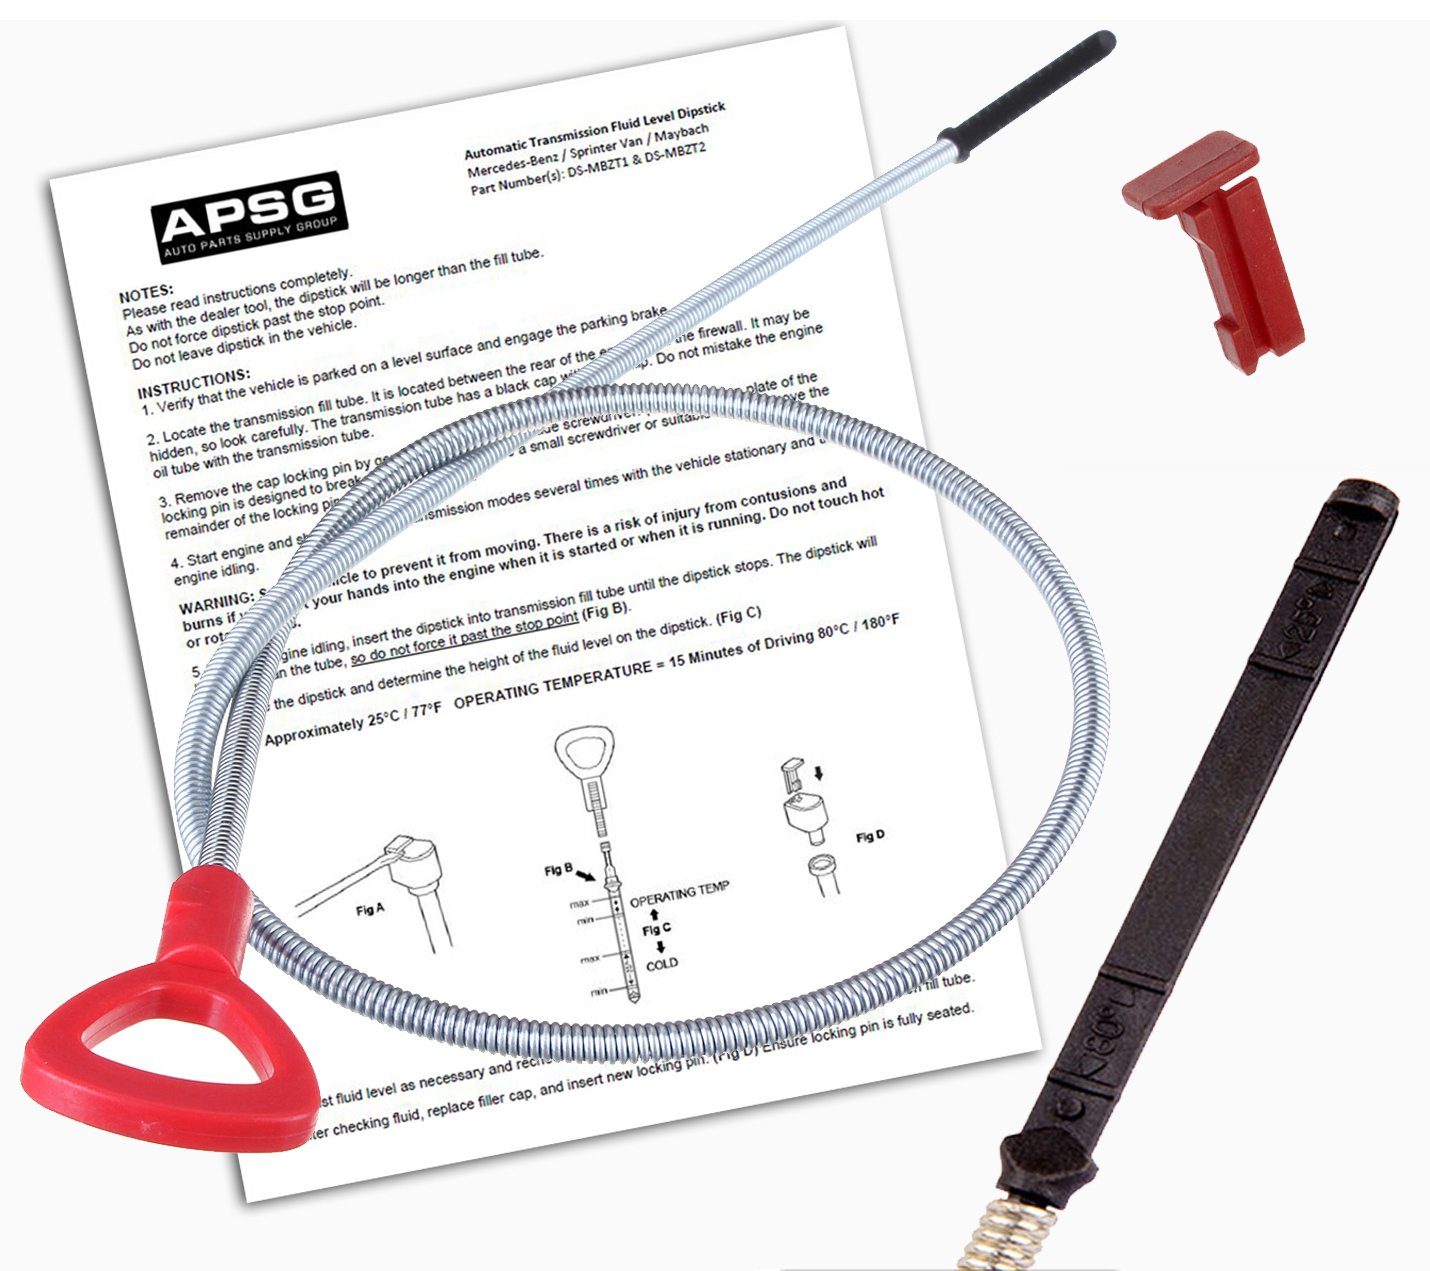 TRANSMISSION DIPSTICK TOOL w/INSTRUCTIONS & FREE LOCKING PIN -For: Mercedes Benz, Mayback, Sprinter to check ATF Fluid Level Automatic Trans oil Auto